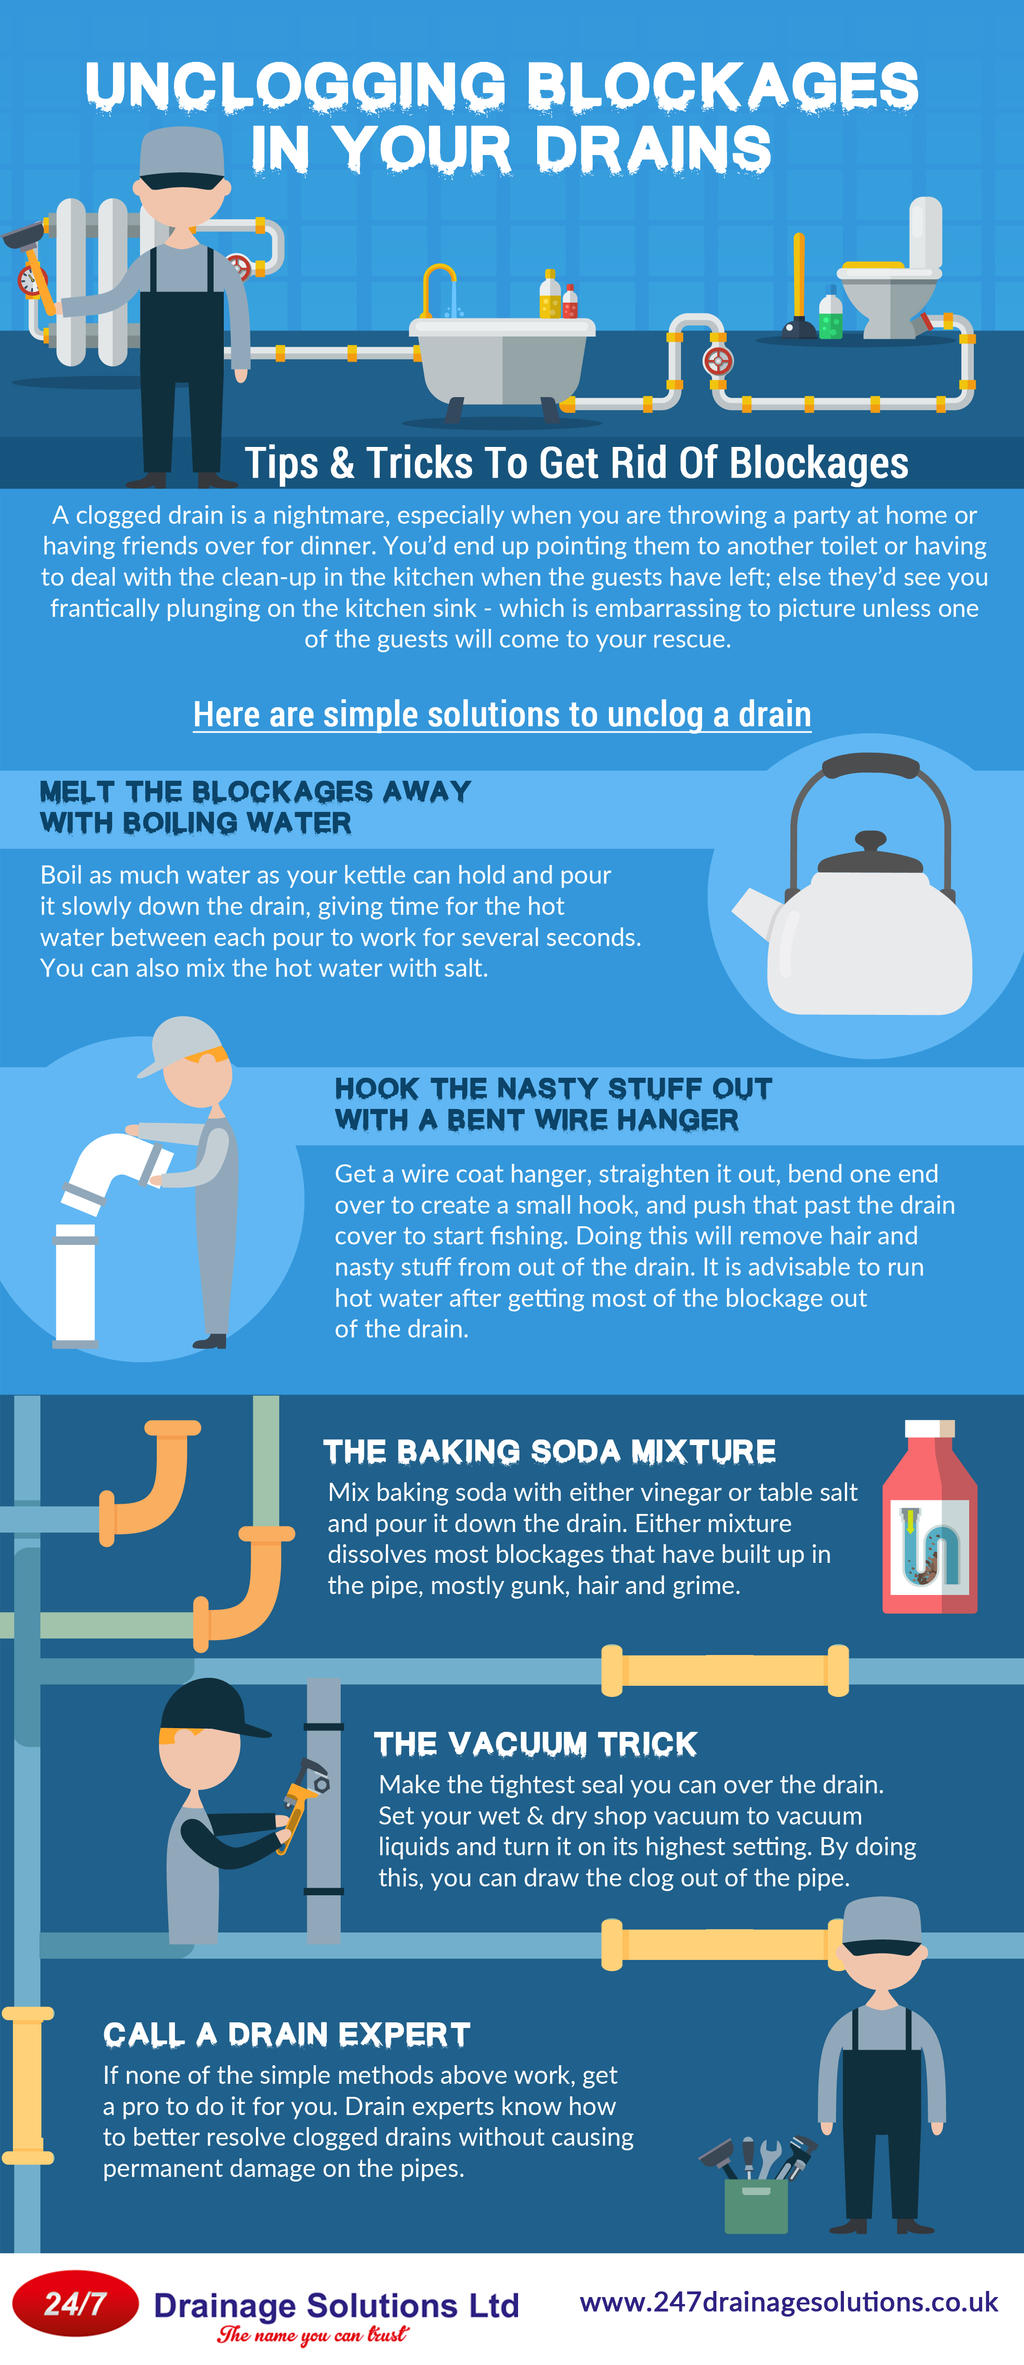 Simple Ways To Clean A clogged Drain by 247drainagesolutions on ...